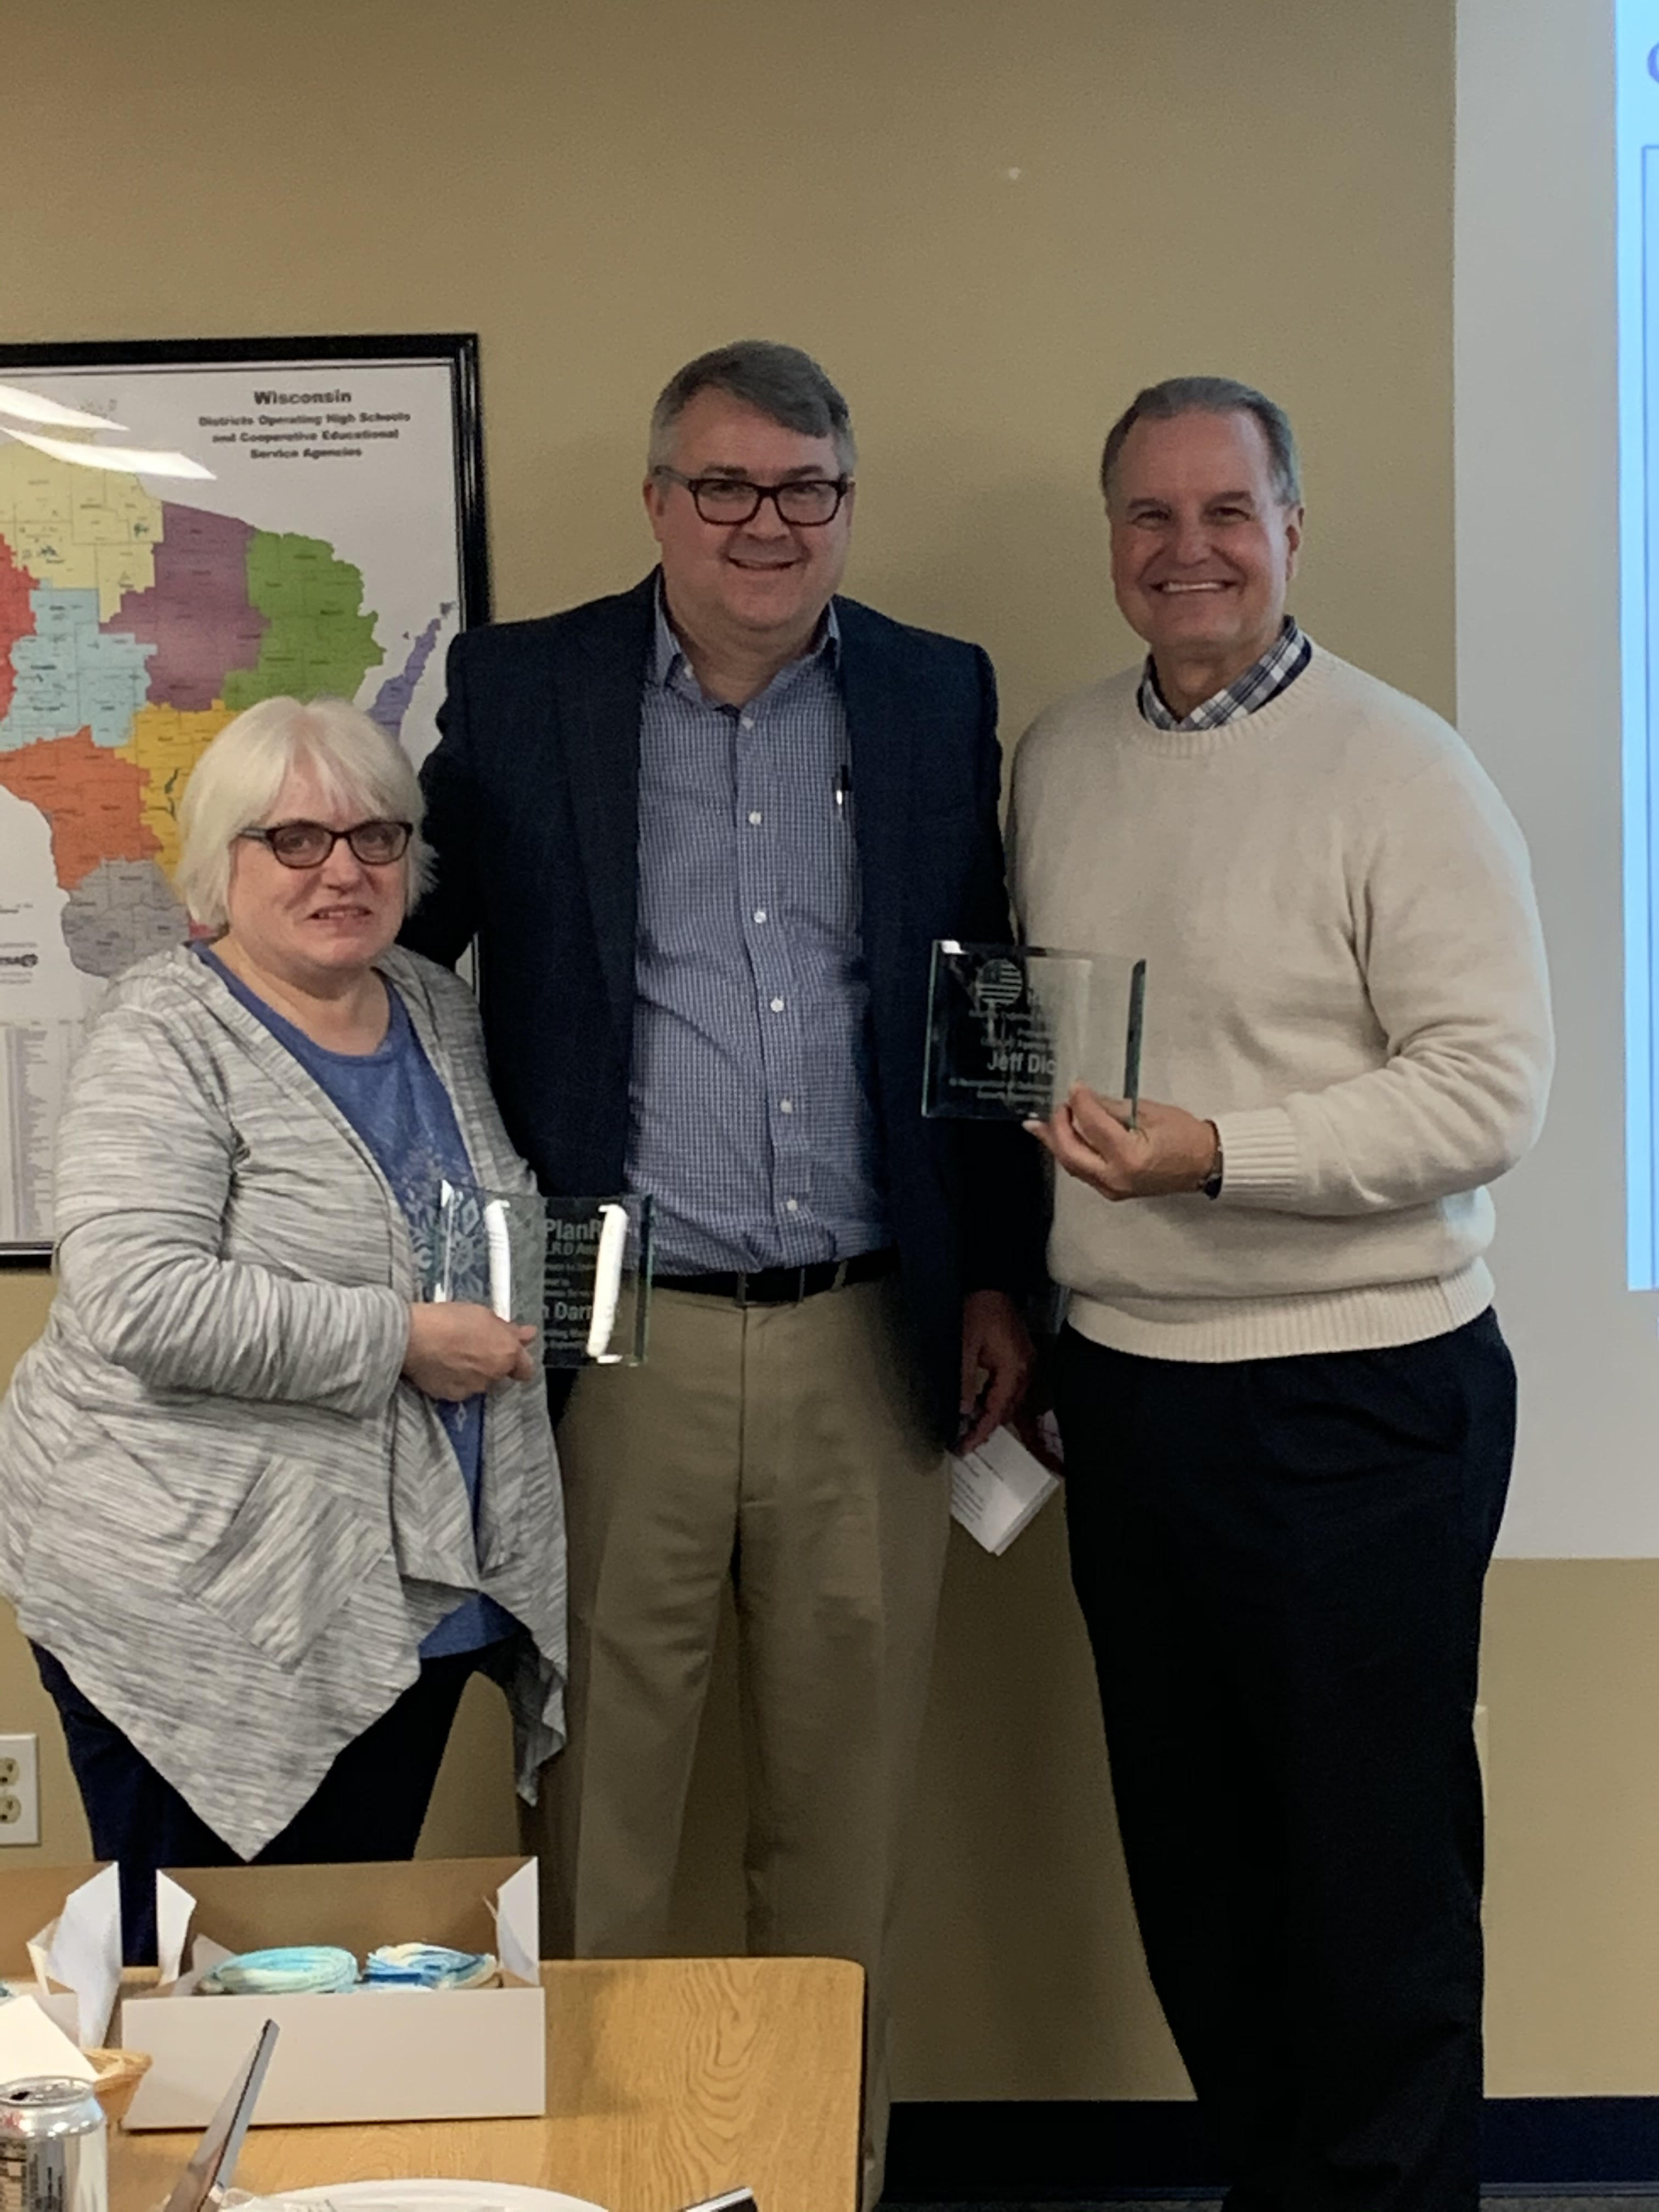 iPlanRx Announces CESA 7 from Green Bay, WI as the 2019 H.E.R.O. Award Recipient; the H.E.R.O. Award Recognizes Outstanding Achievement in Reducing Health Insurance Costs